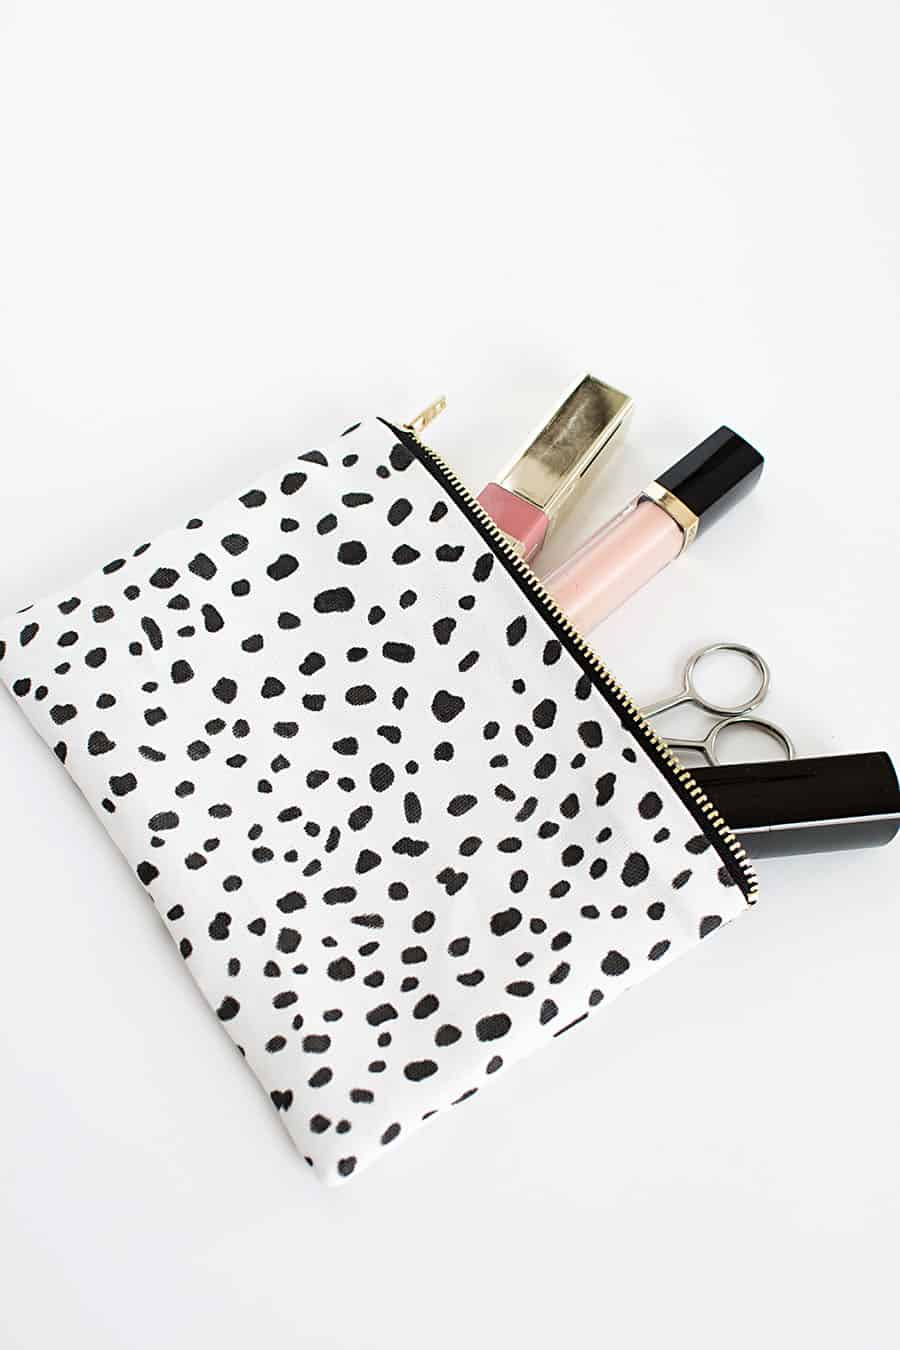 DIY-no-sew-zipper-pouch